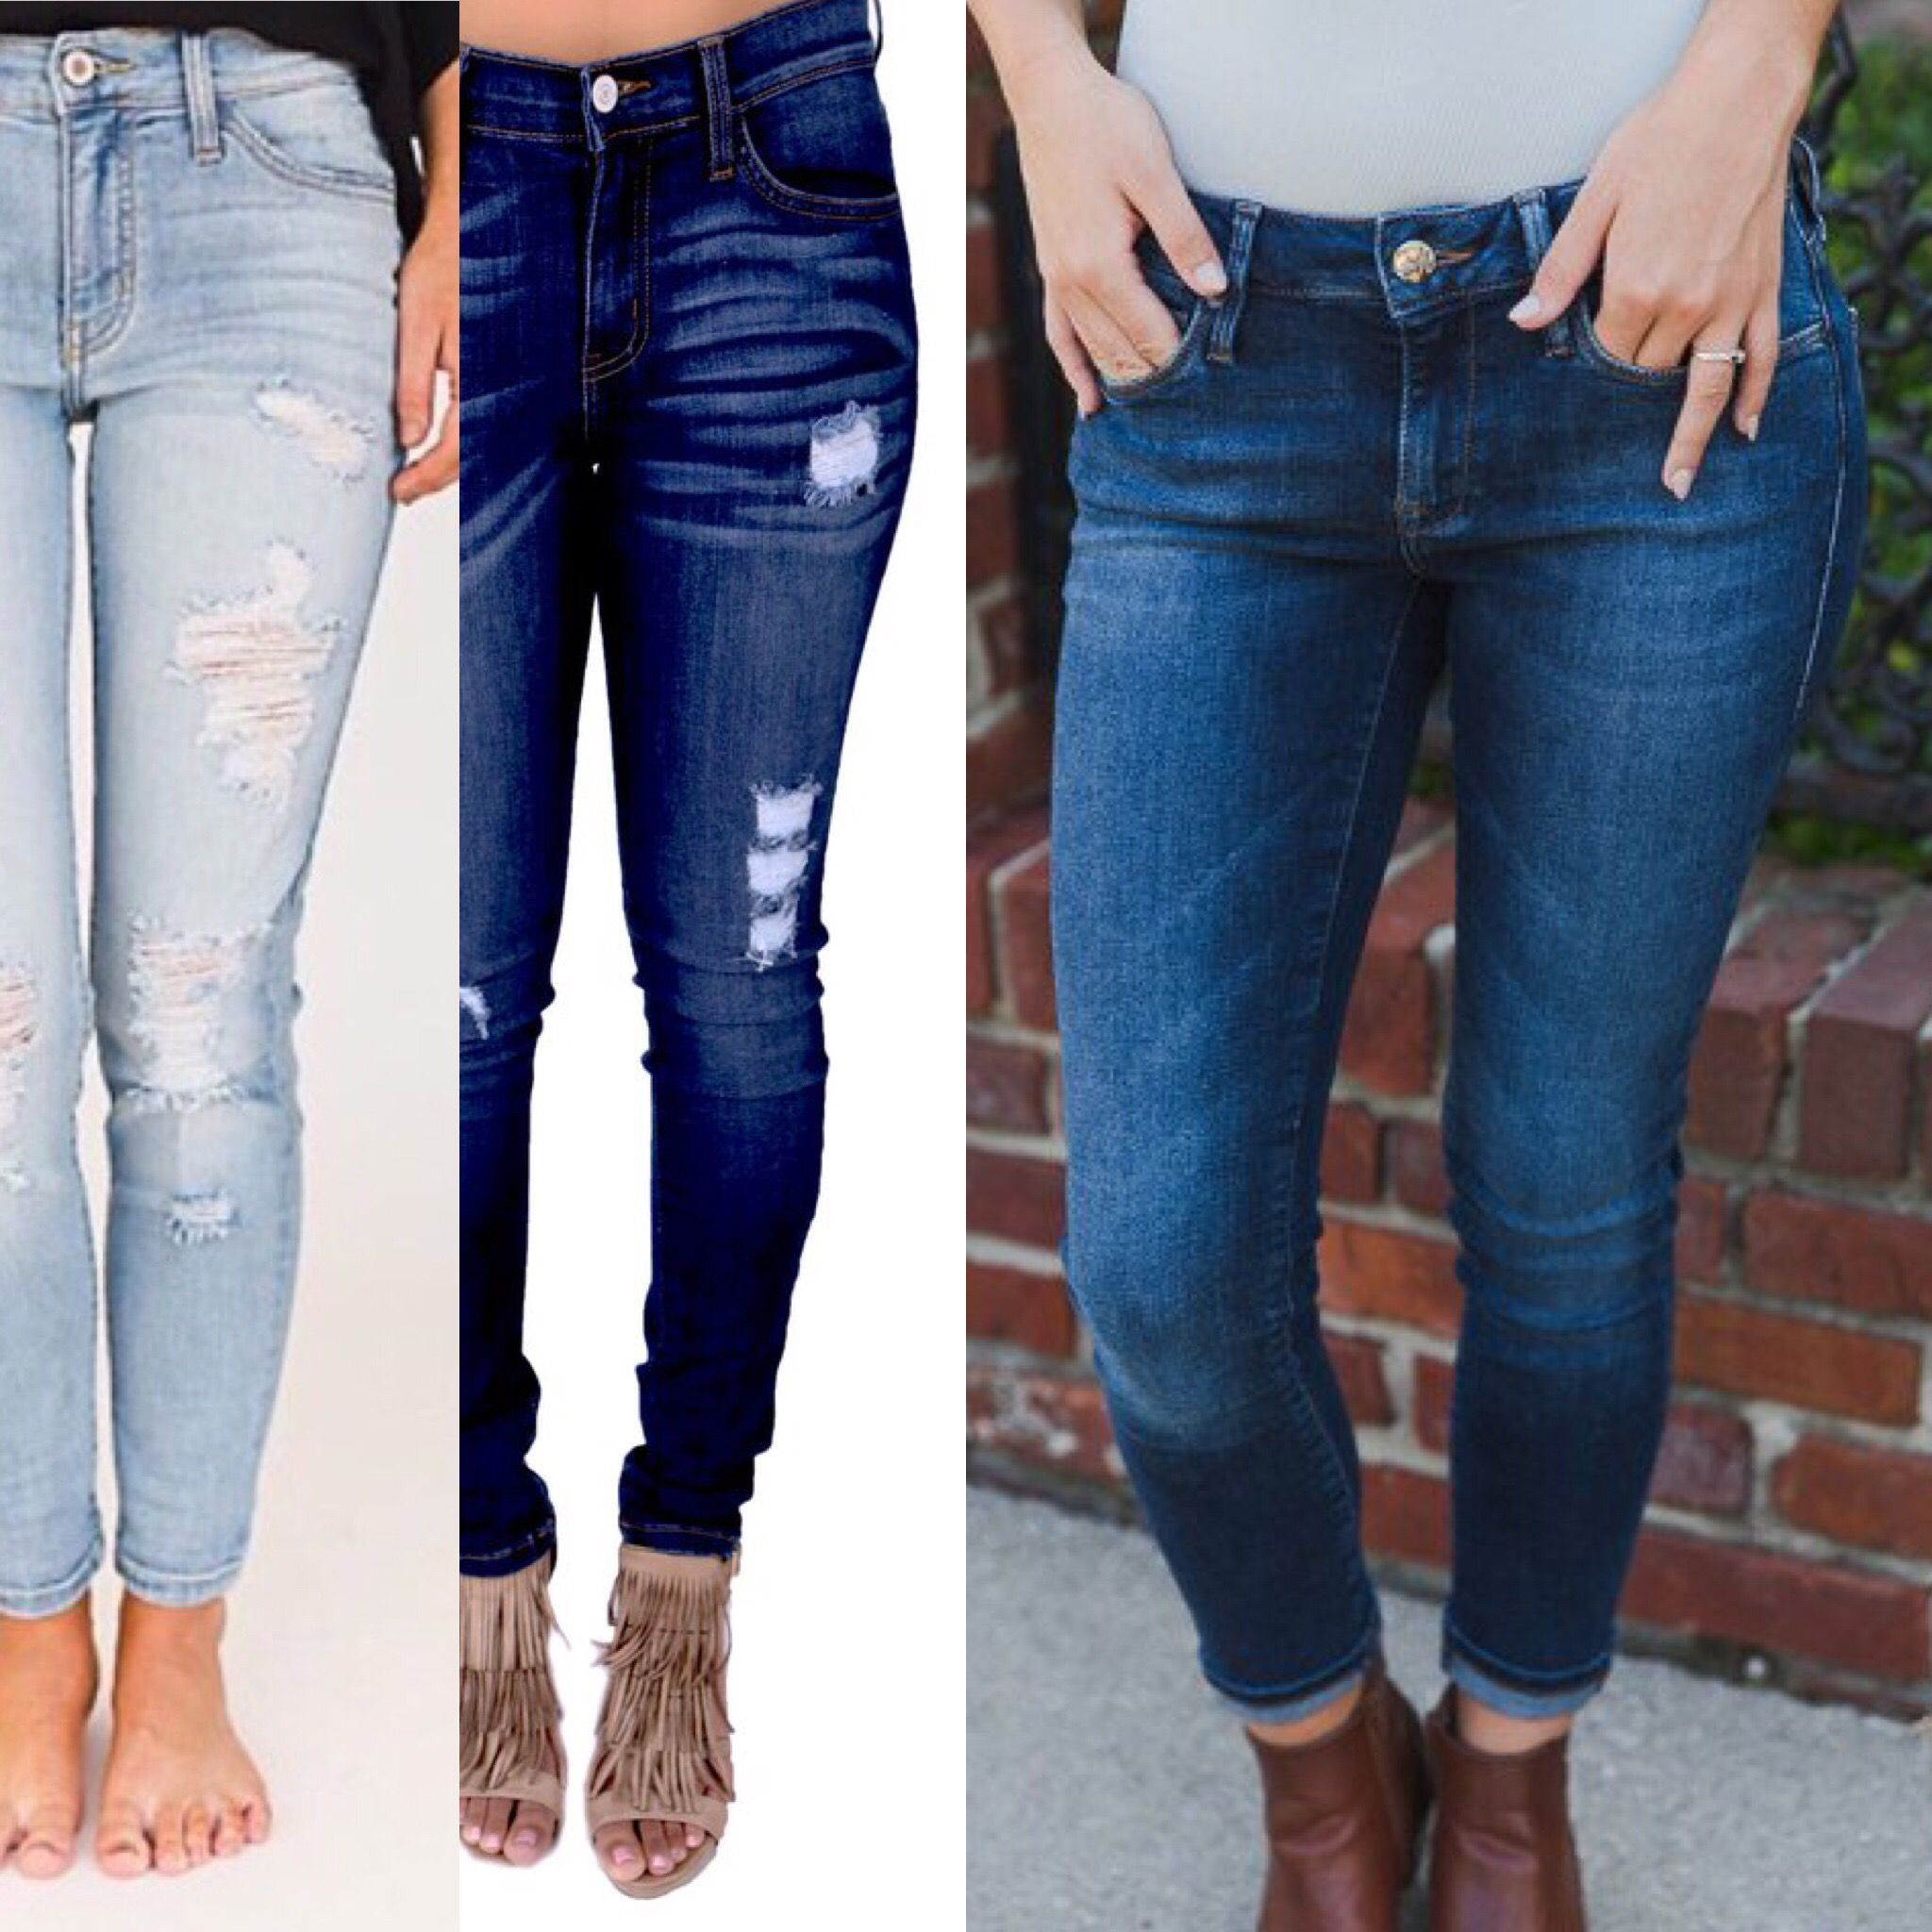 Looking for a perfect pair of jeans that fit your Petite frame? Girl, we've got you! Perfect length, amazing quality! ✨✨